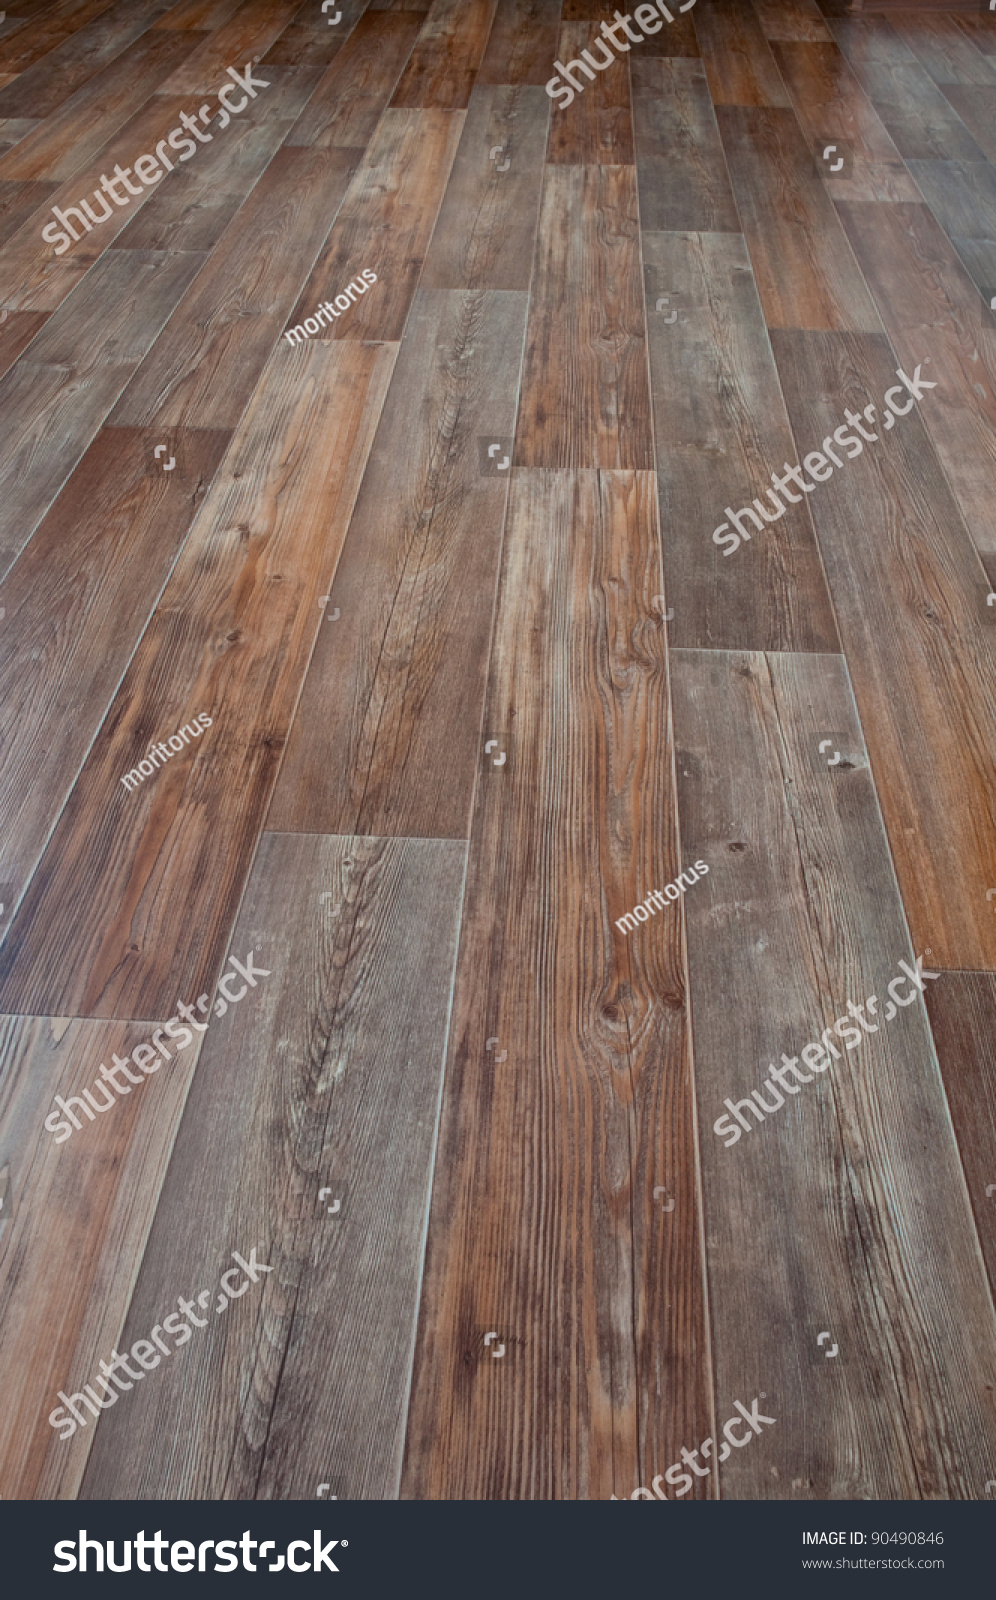 linoleum floor covering imitation wood stock photo. Black Bedroom Furniture Sets. Home Design Ideas